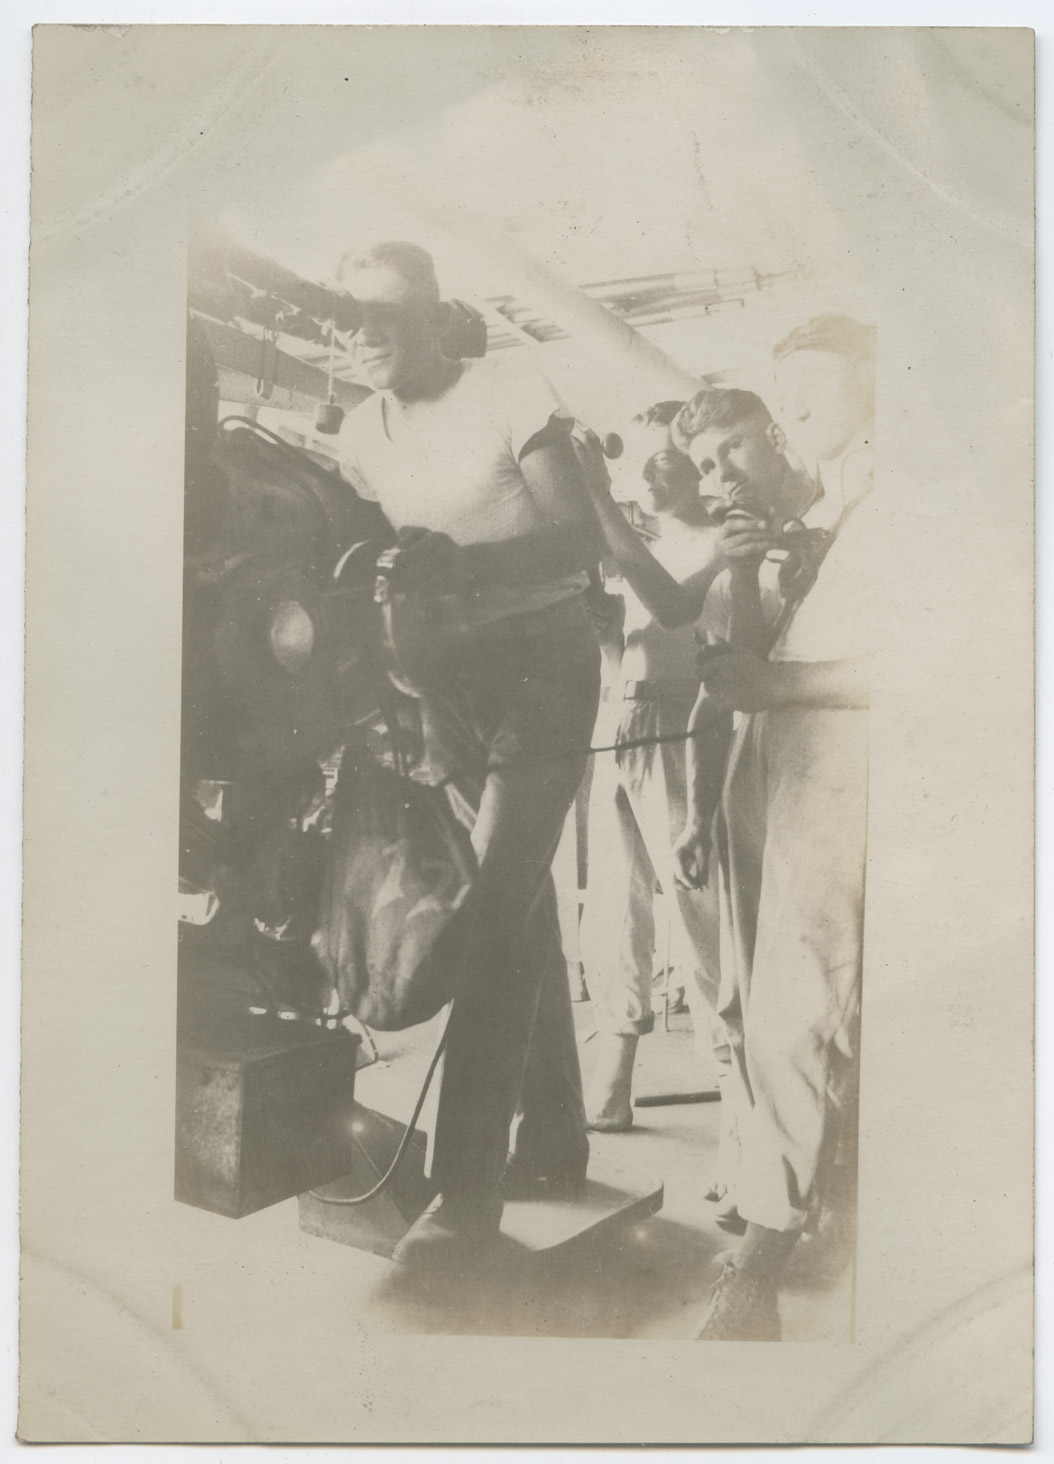 One man checks the sights on the guns while the man behind him reports to other members of the gunnery crew through a communications tube.